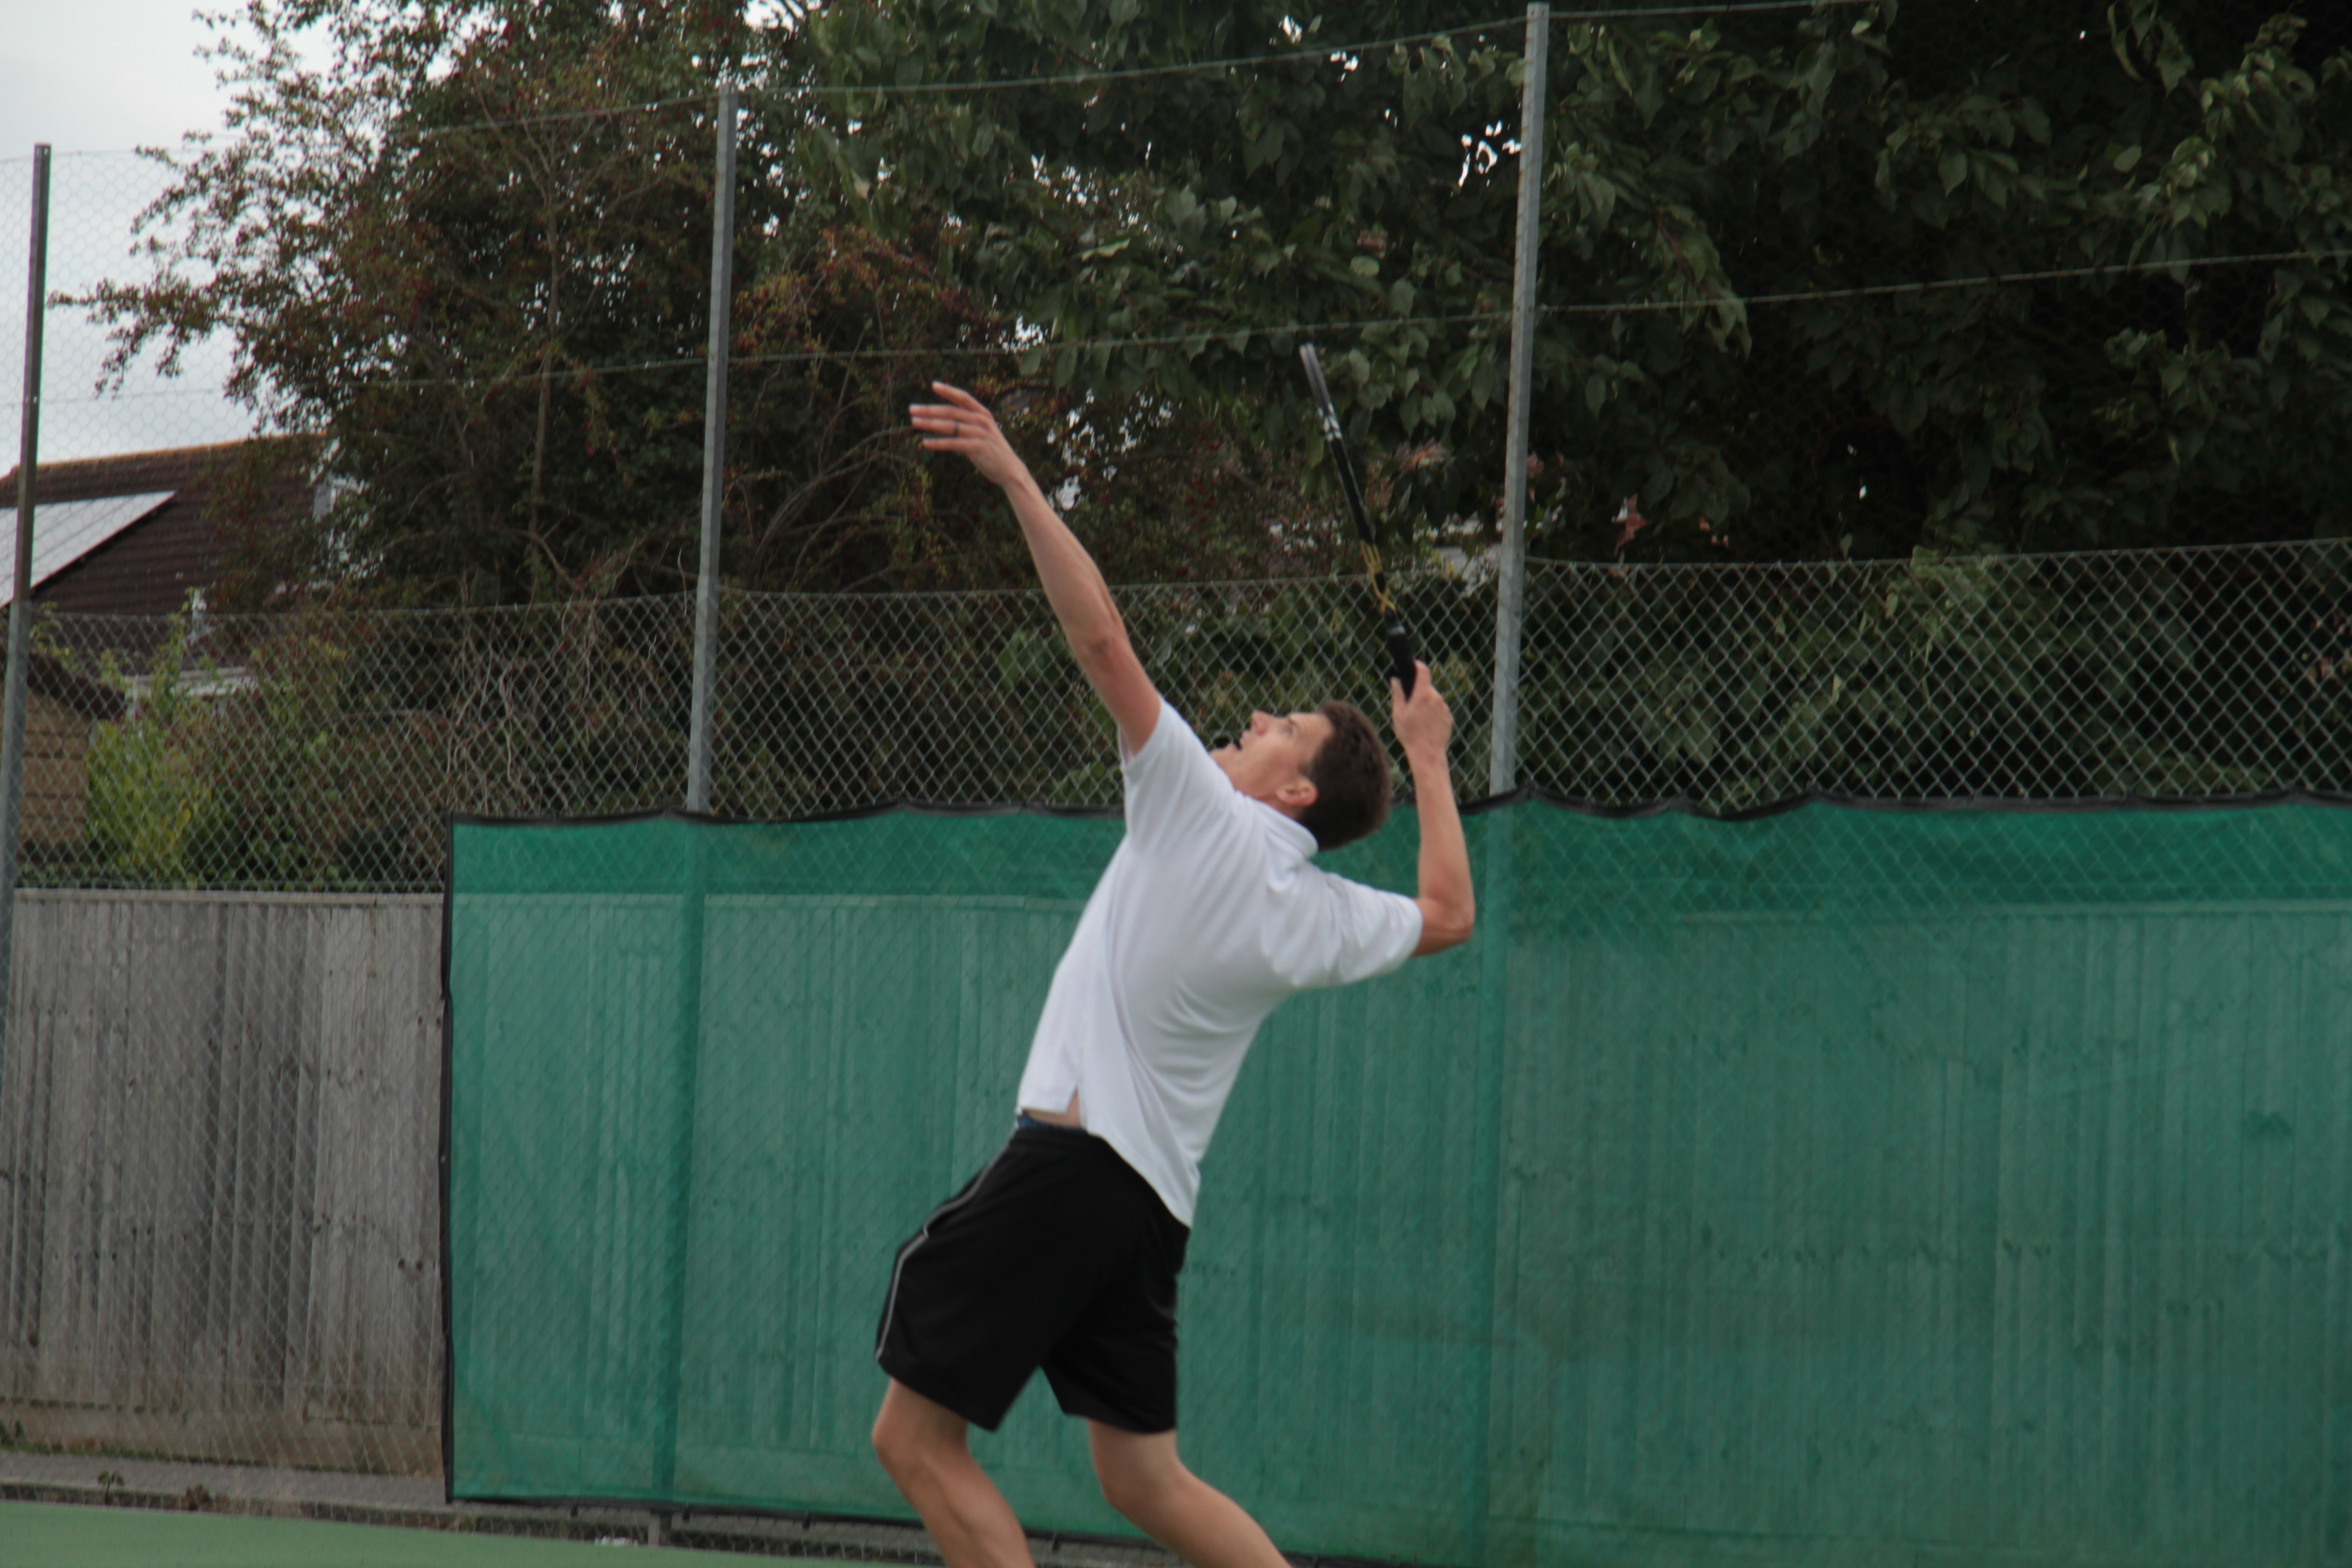 Christoph serving